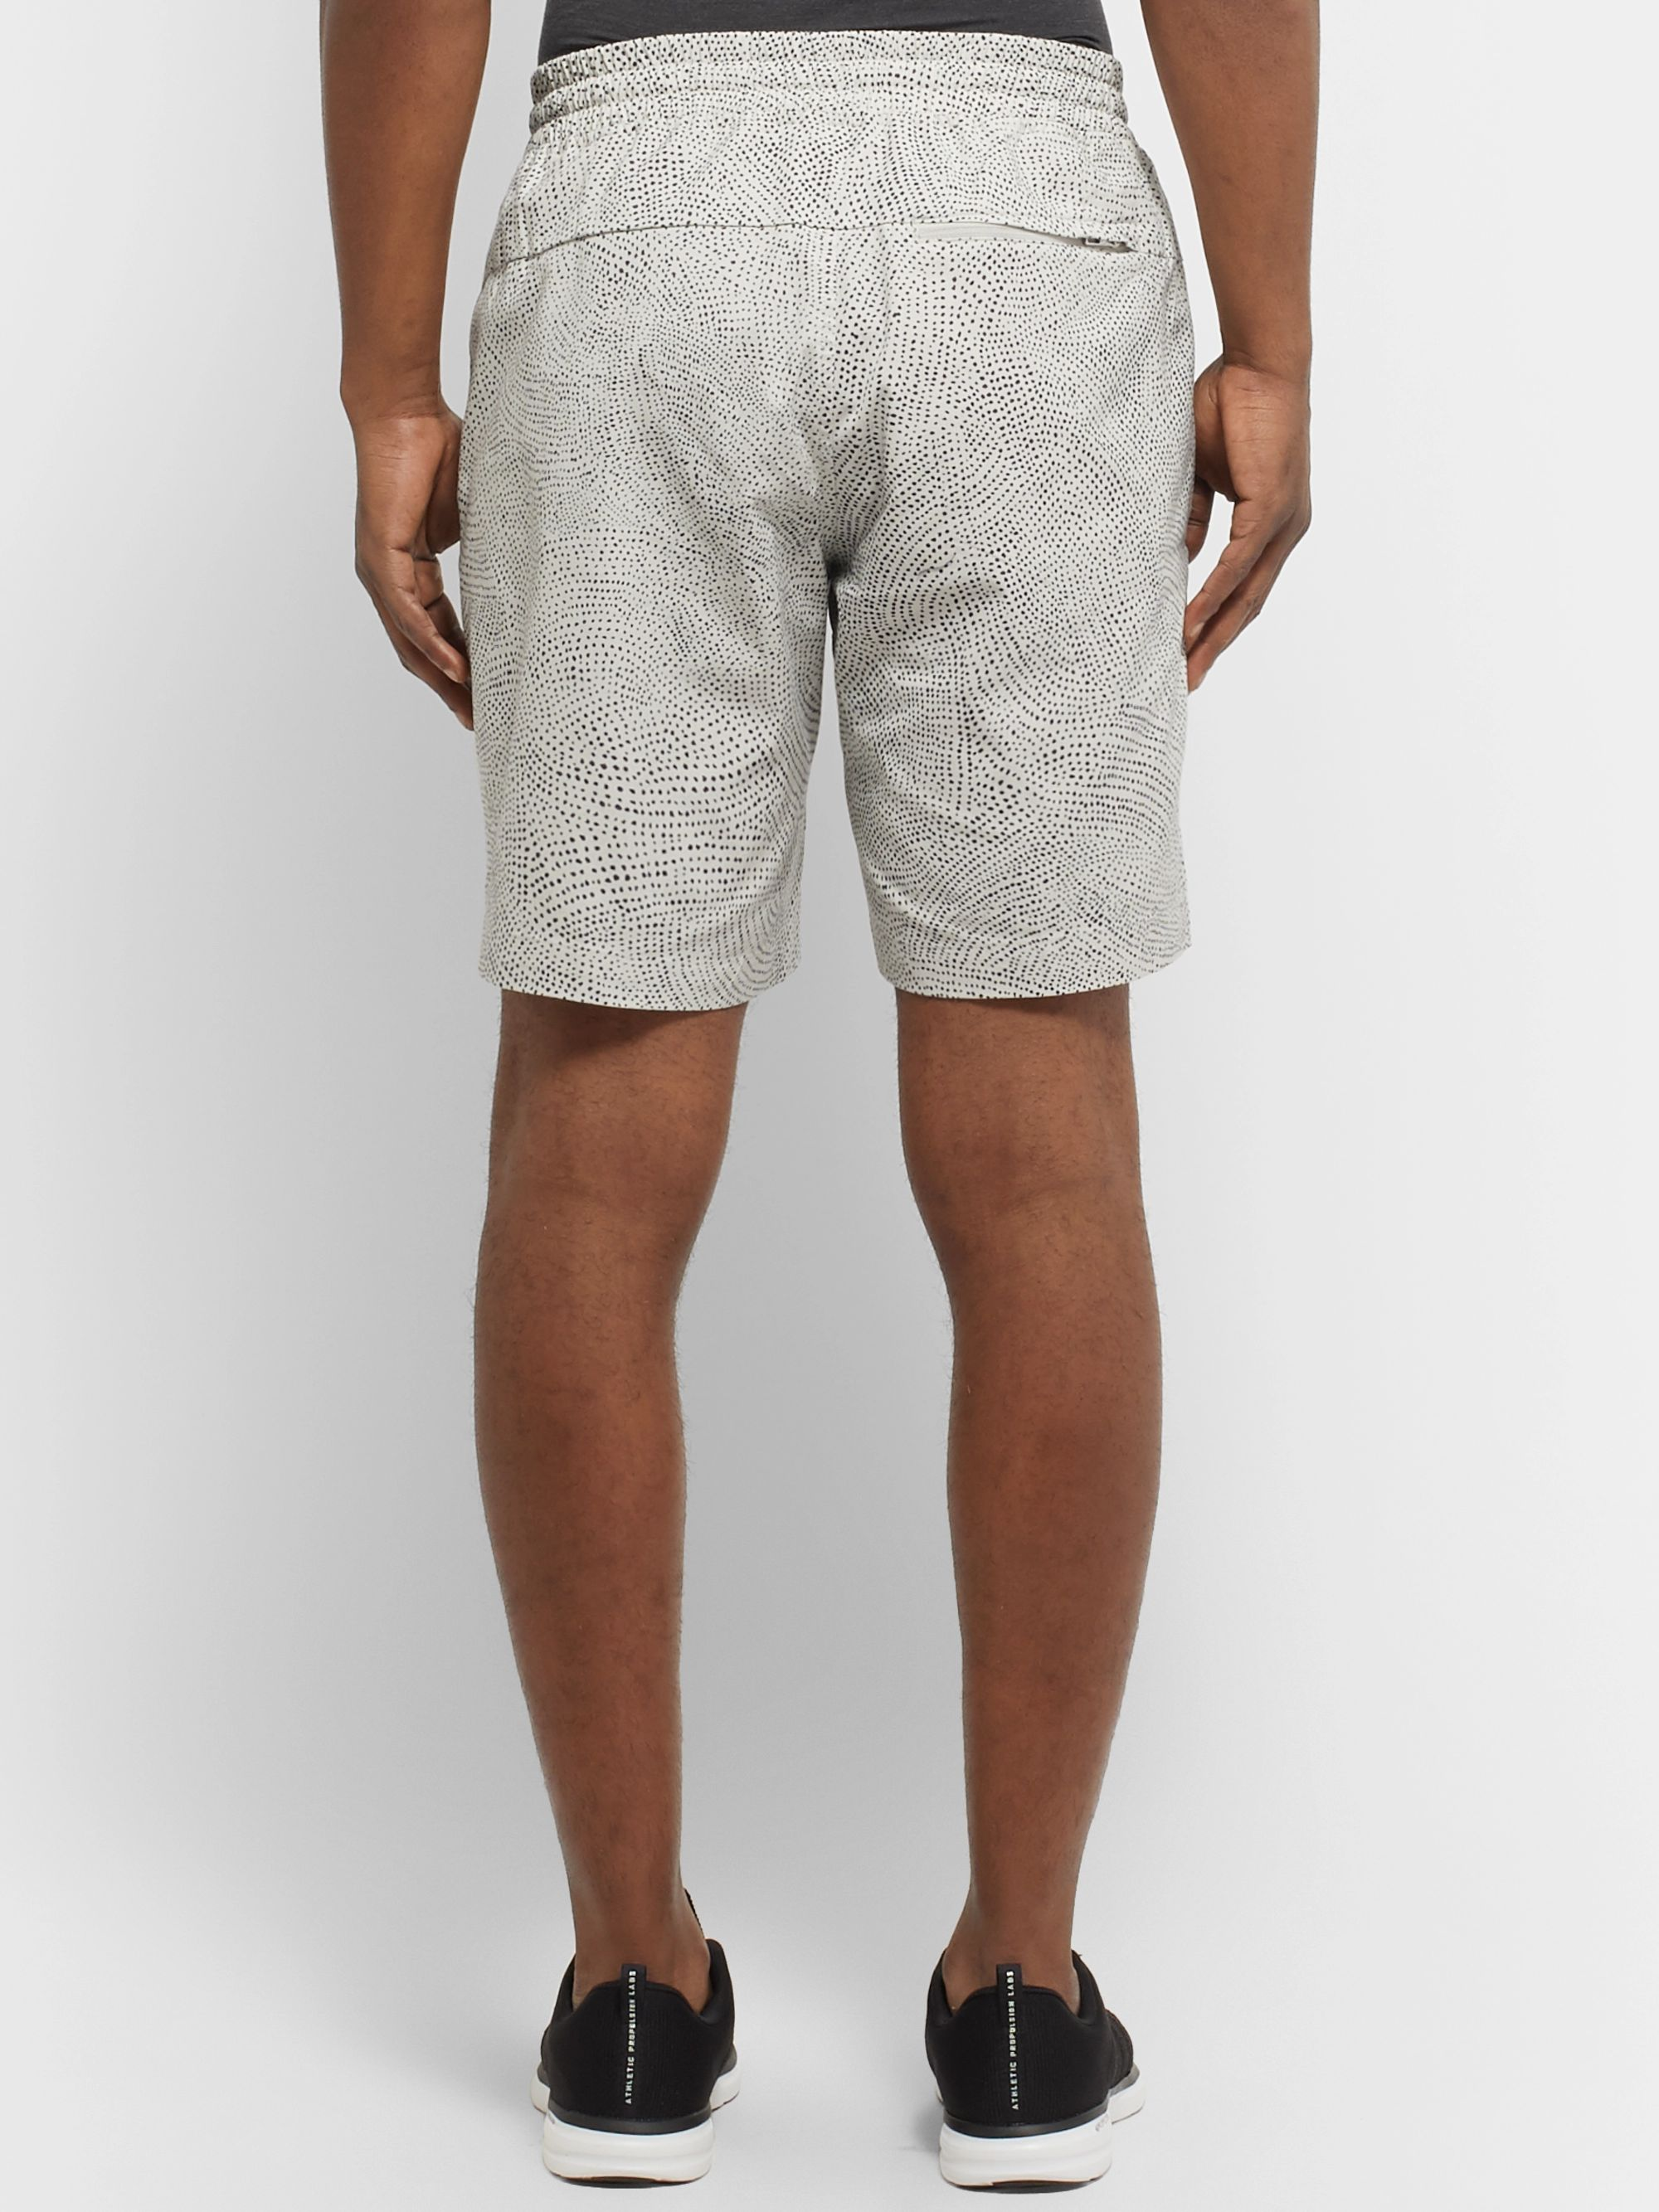 Lululemon Bowline Printed Stretch Organic Cotton-Blend Shorts